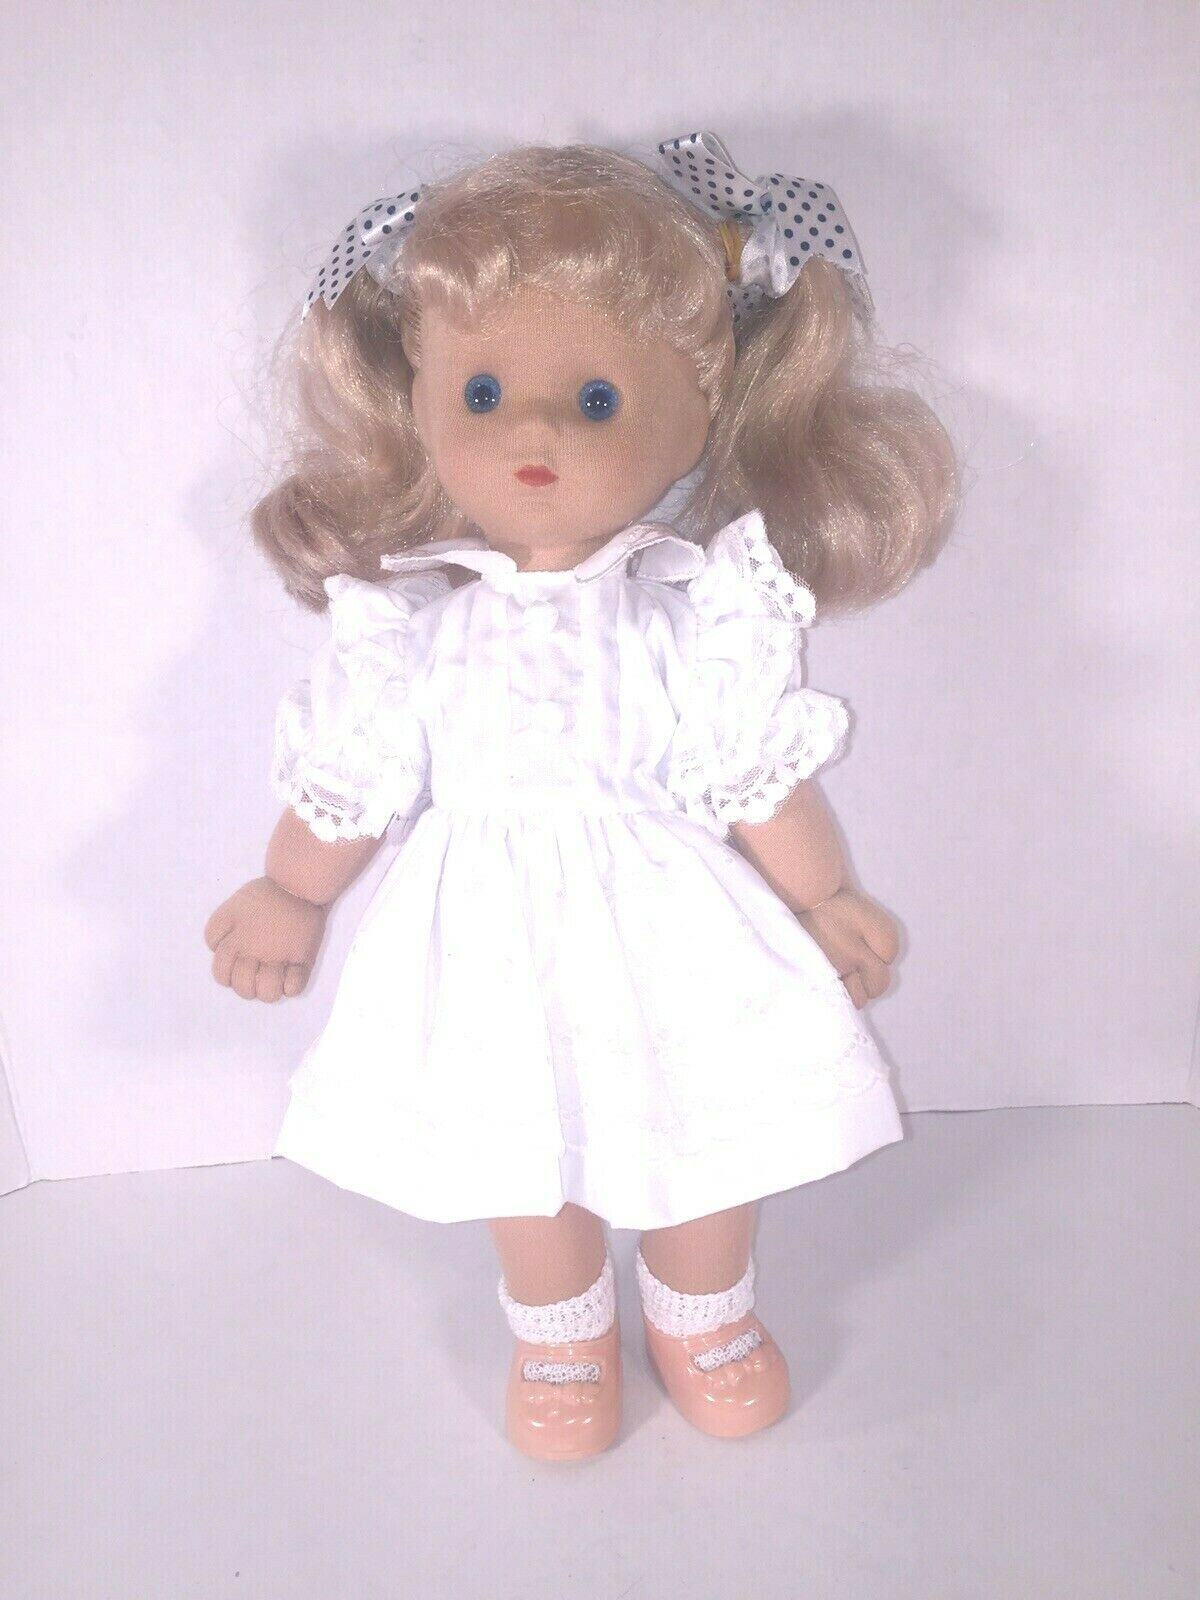 1986 Poseable Playmates Doll Blonde In a White Dress